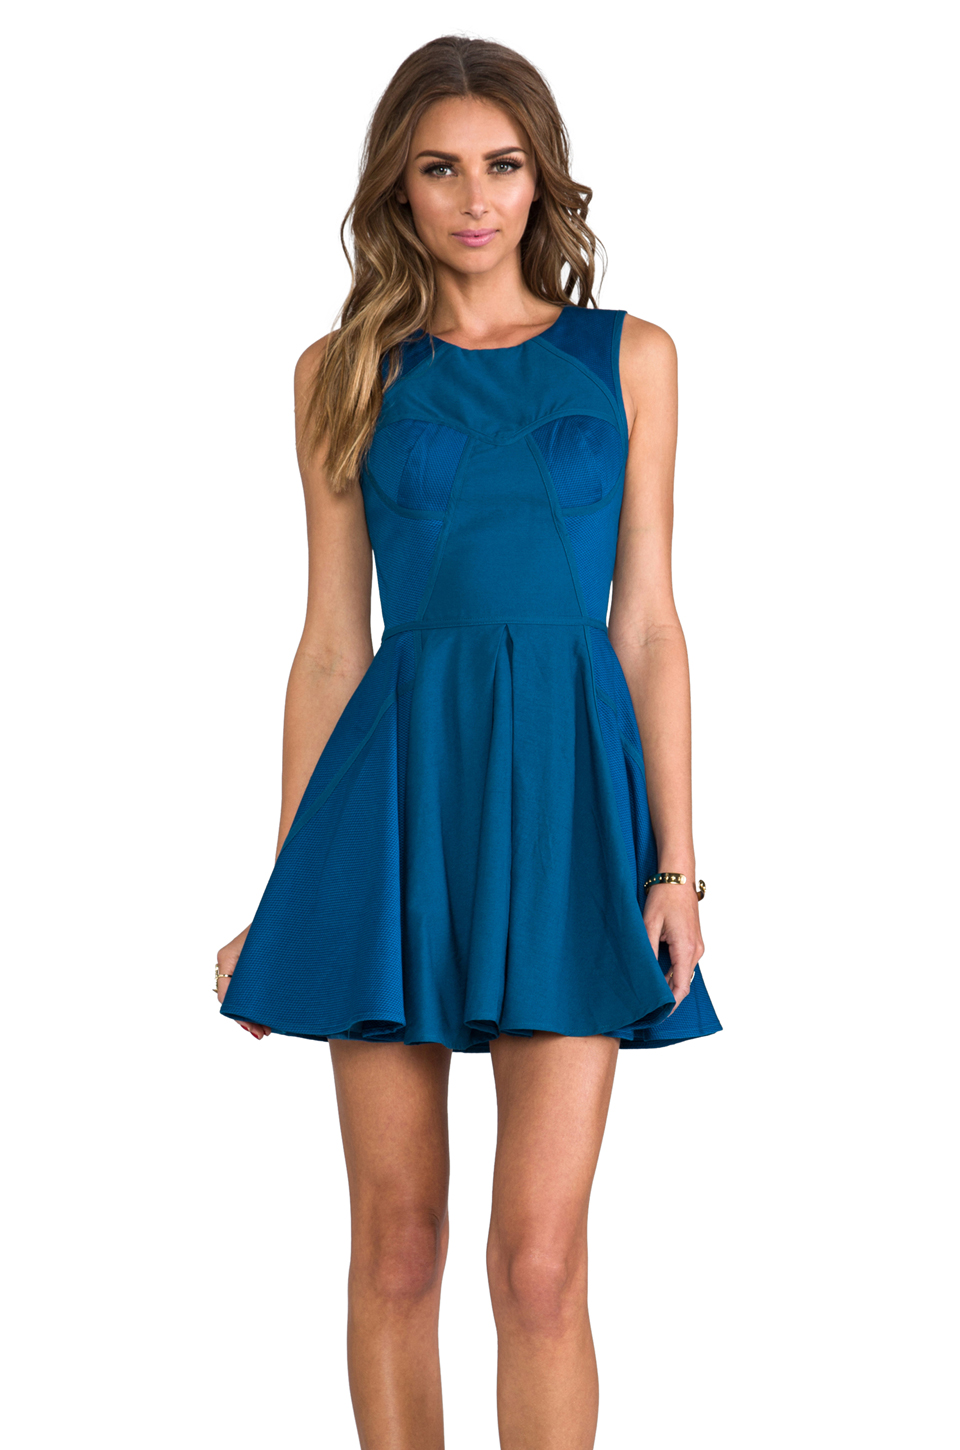 Finders Keepers Back to December Dress in Teal